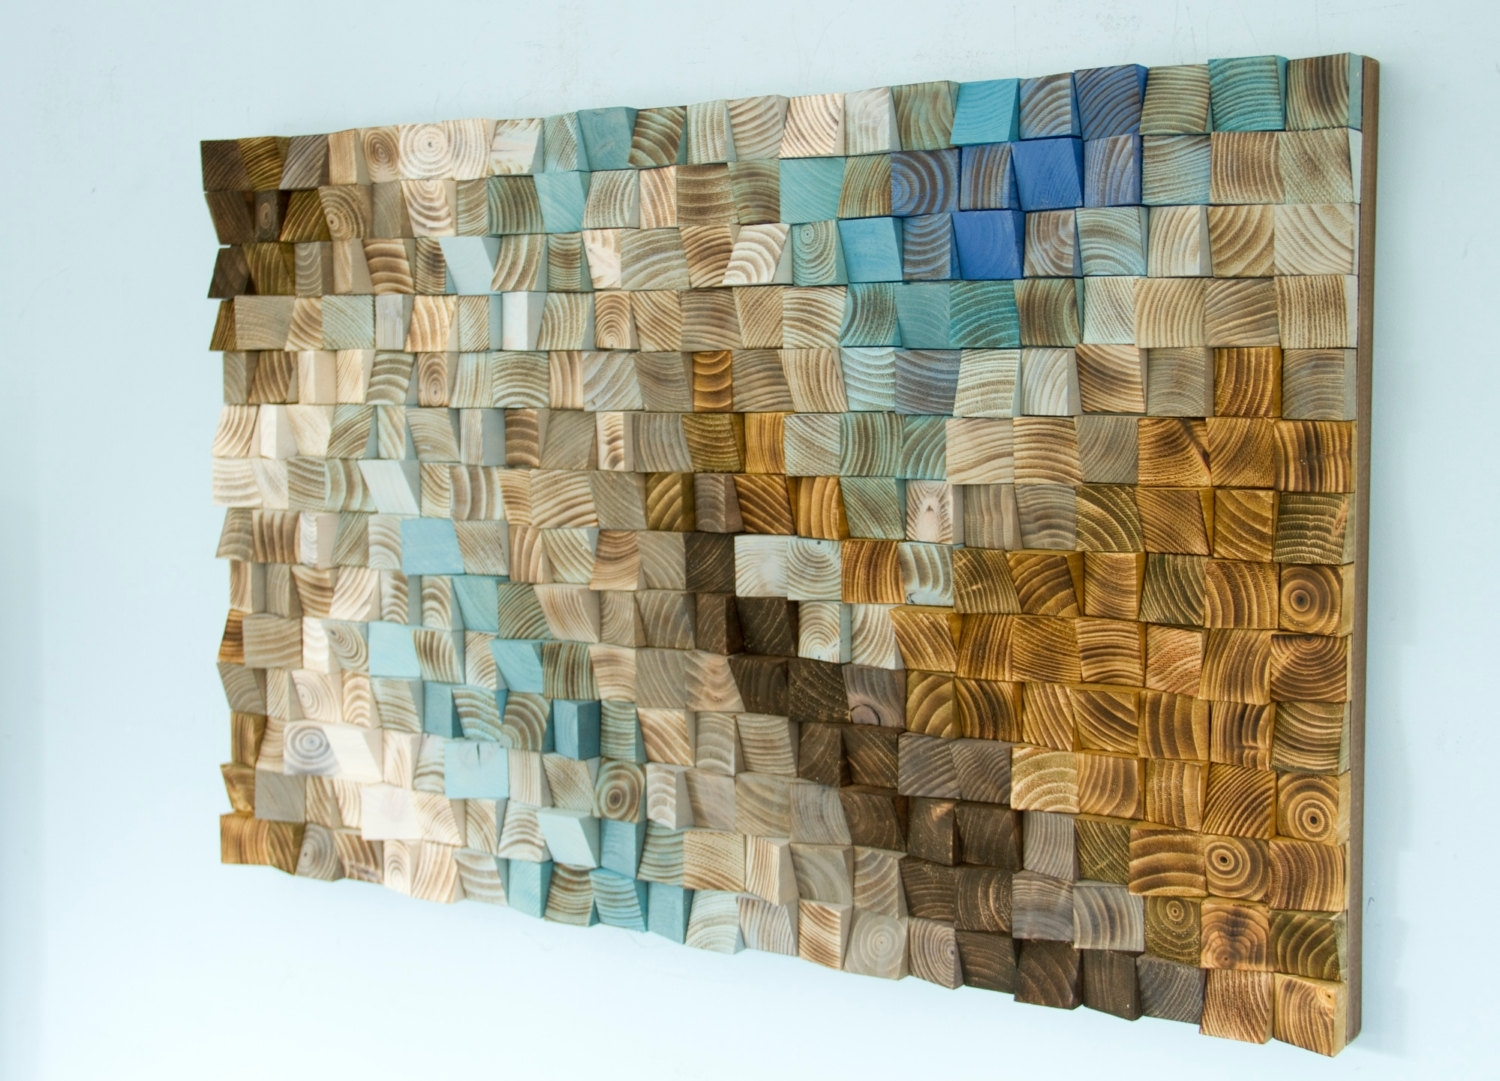 Daebabefaad Good Mosaic Wall Art - Home Design And Wall Decoration Ideas regarding Mirror Mosaic Wall Art (Image 6 of 20)